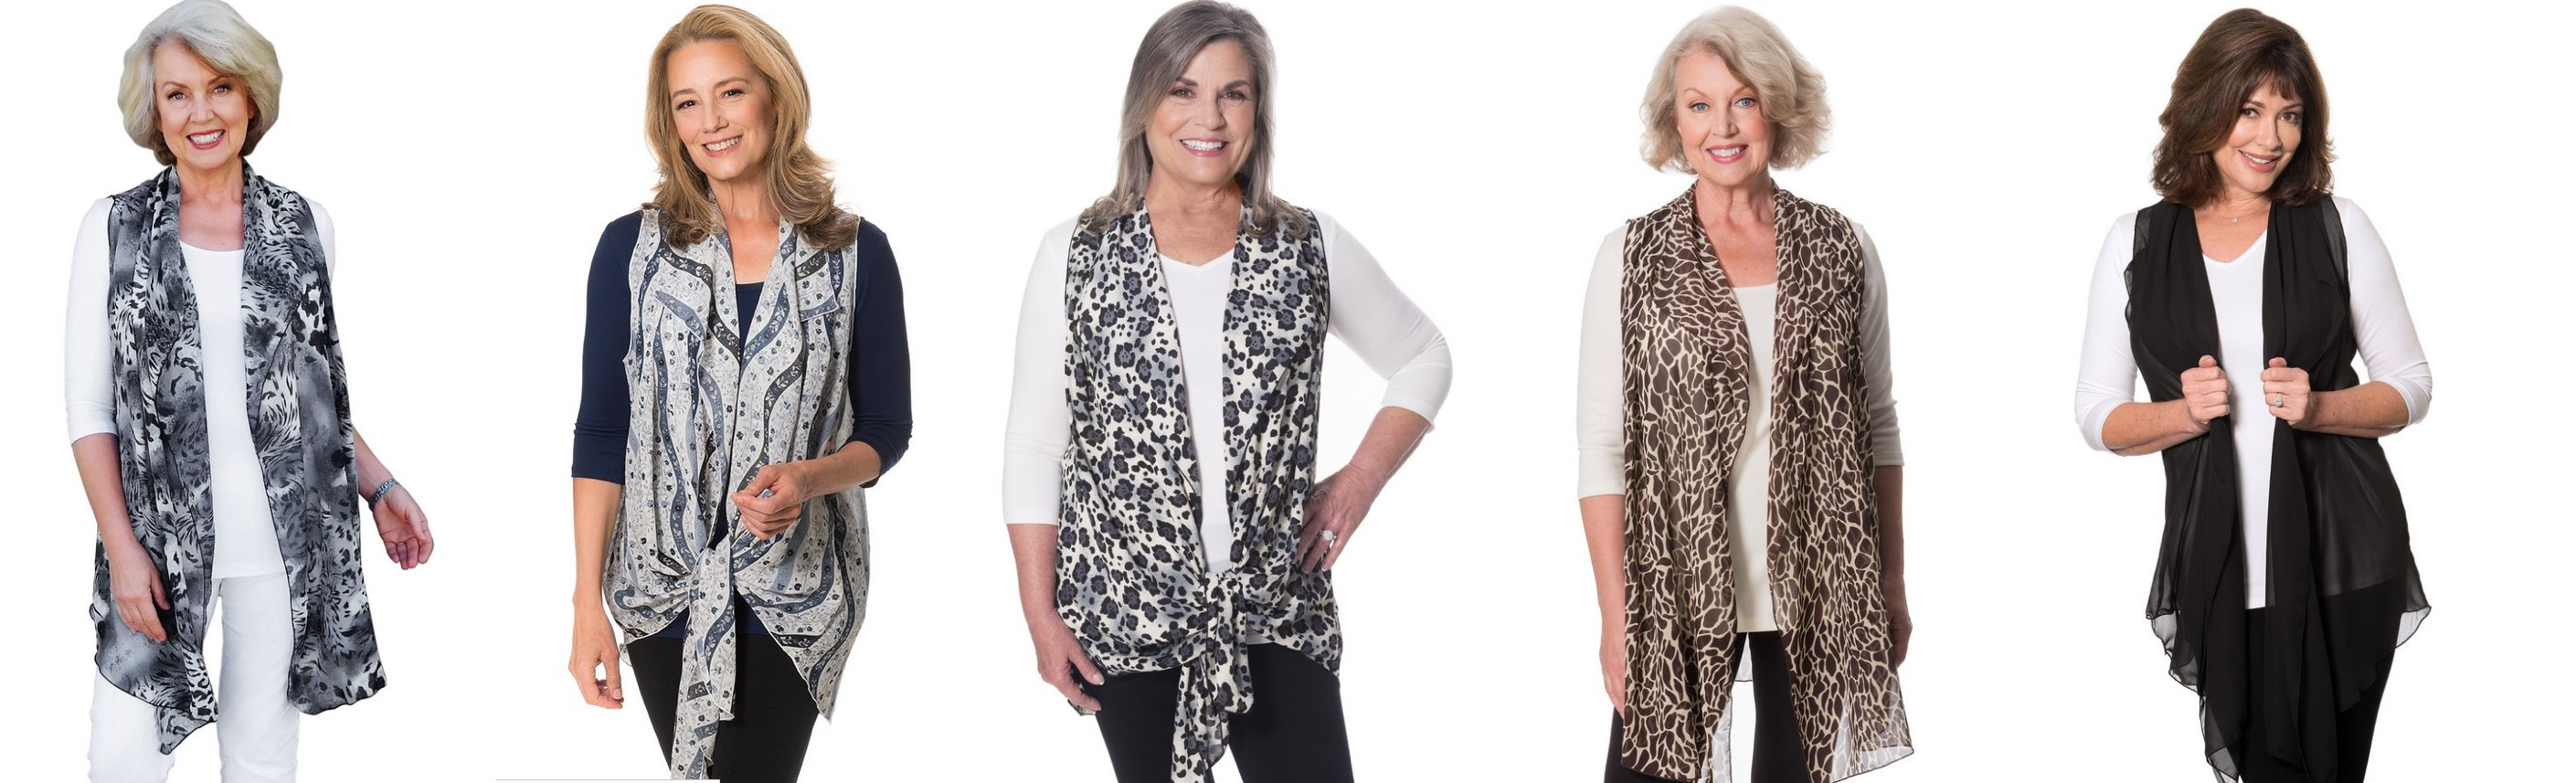 Clever cascading vests from Covered Perfectly cover midriff and tummy problems #hide tummy fat #Covered Perfectly  http://www.style-yourself-confident.com/hide-tummy-fat.html